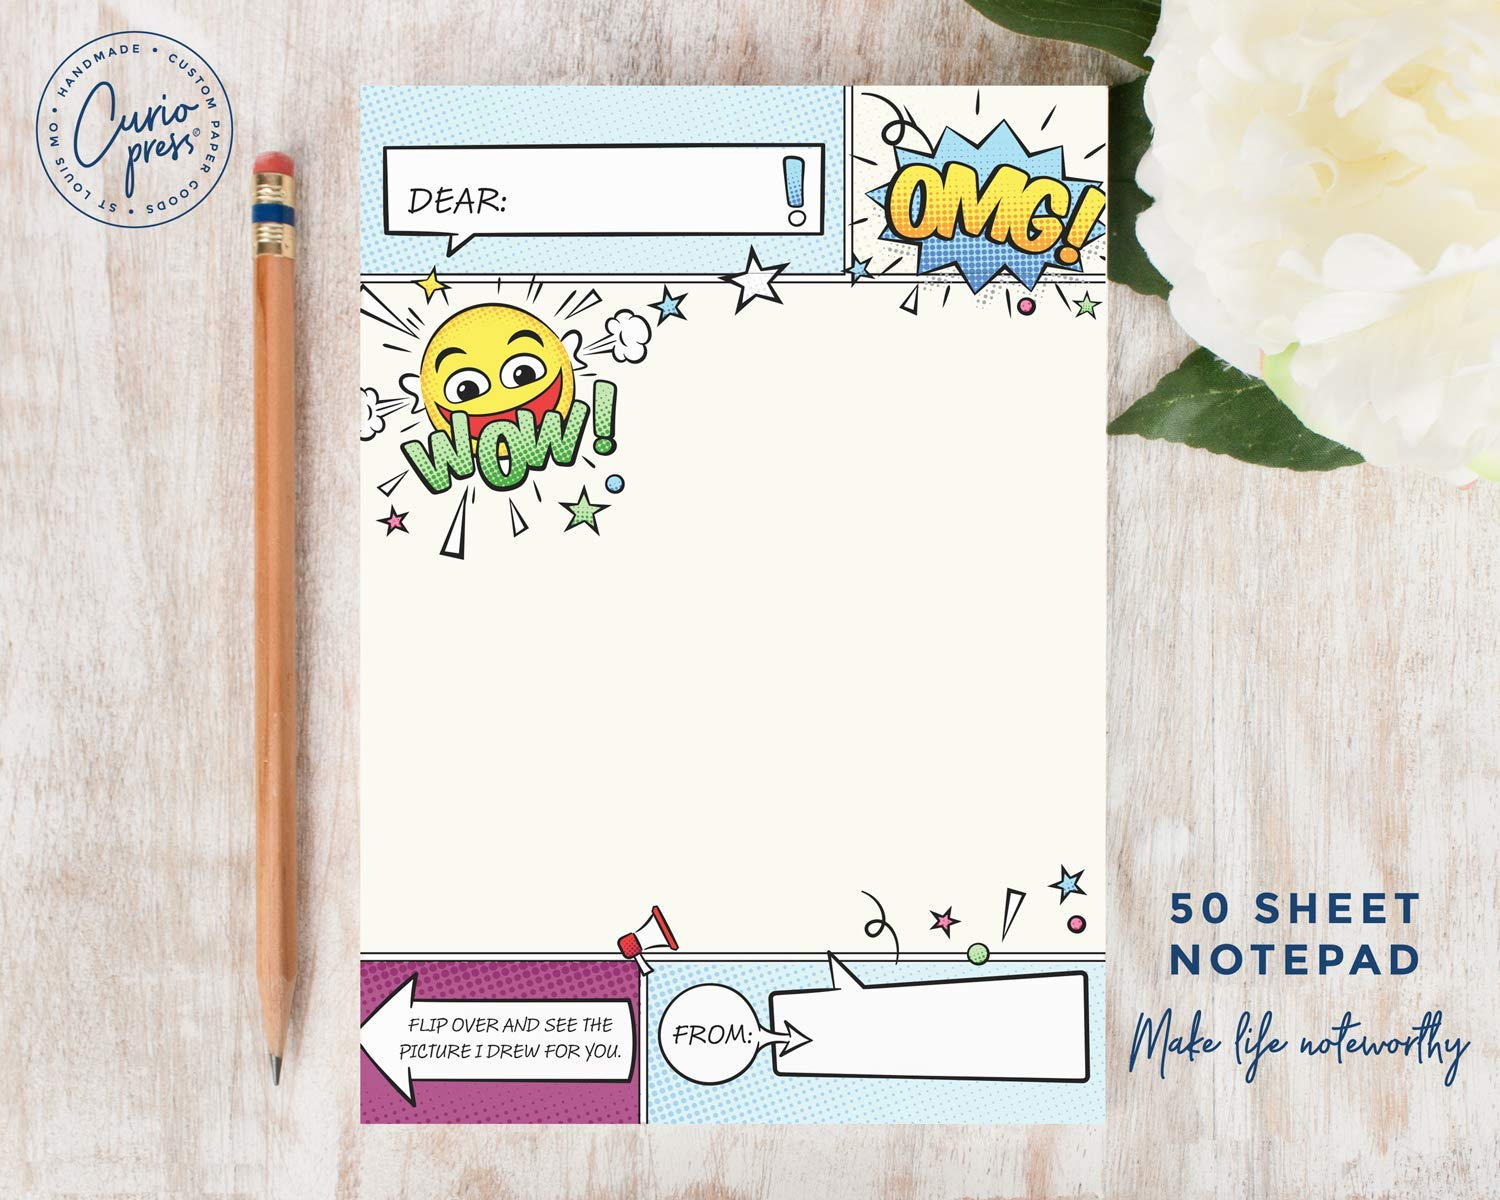 Personalized Bold Stationery/Stationary 5x7 or 8x10 Note Pad TWO ...